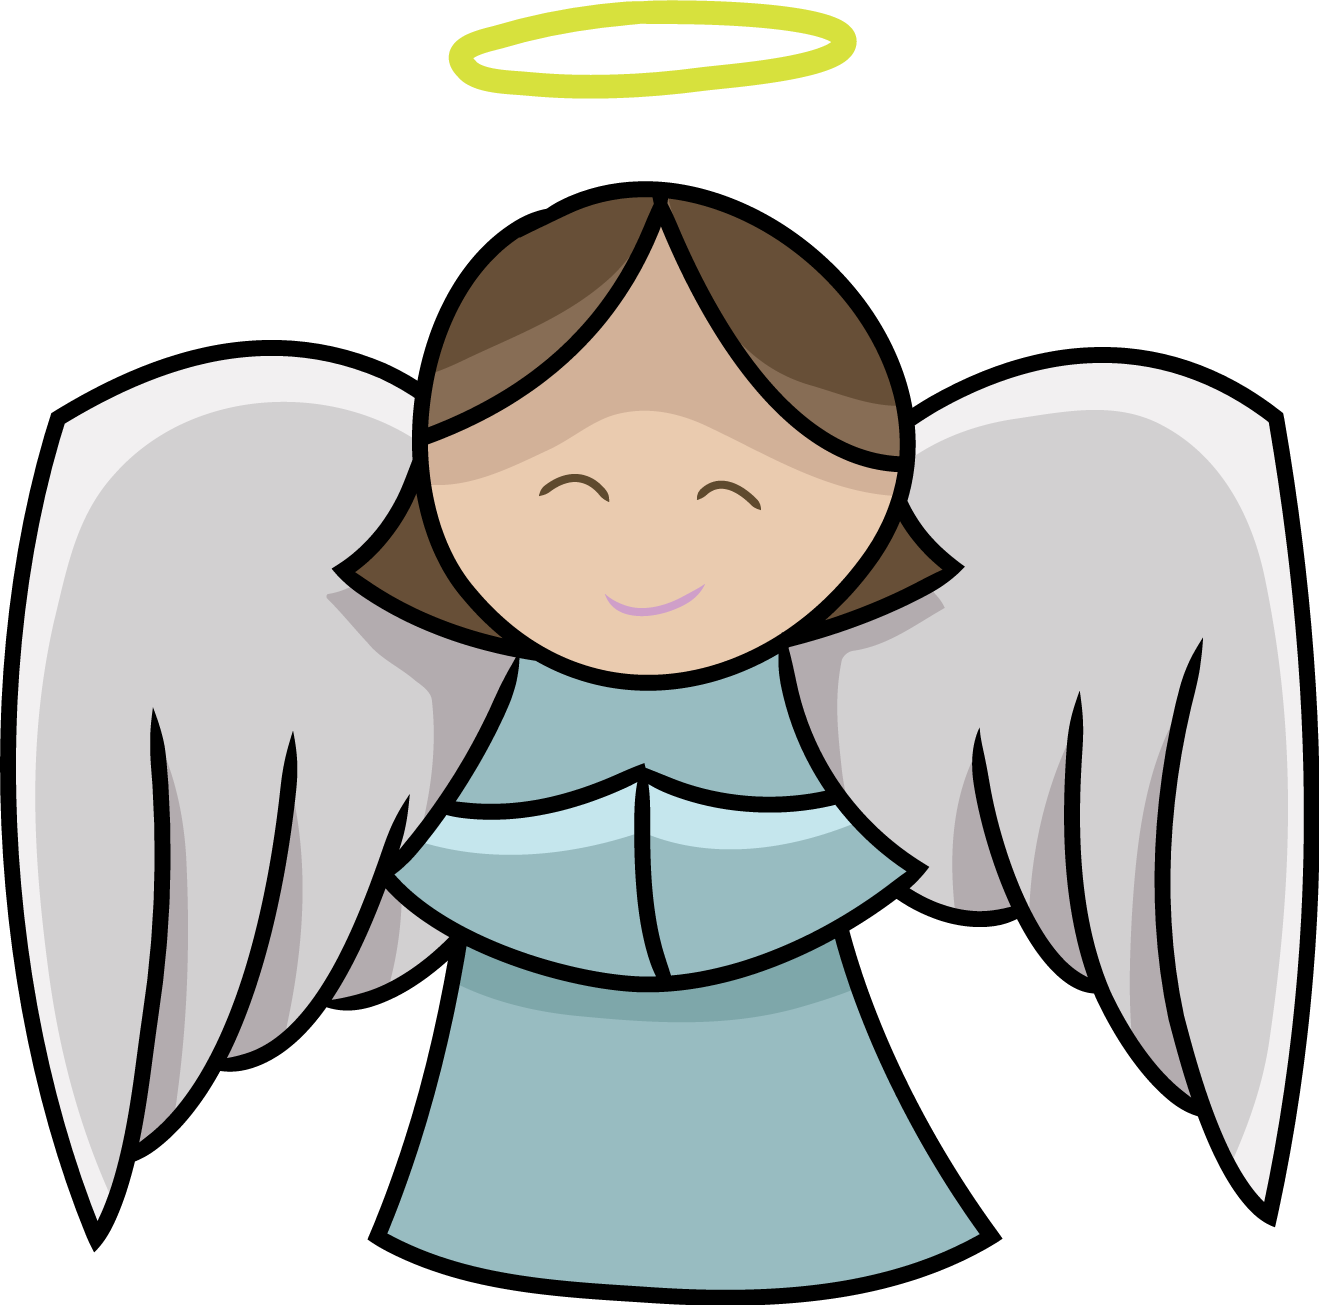 Angel free to use cliparts-Angel free to use cliparts-0